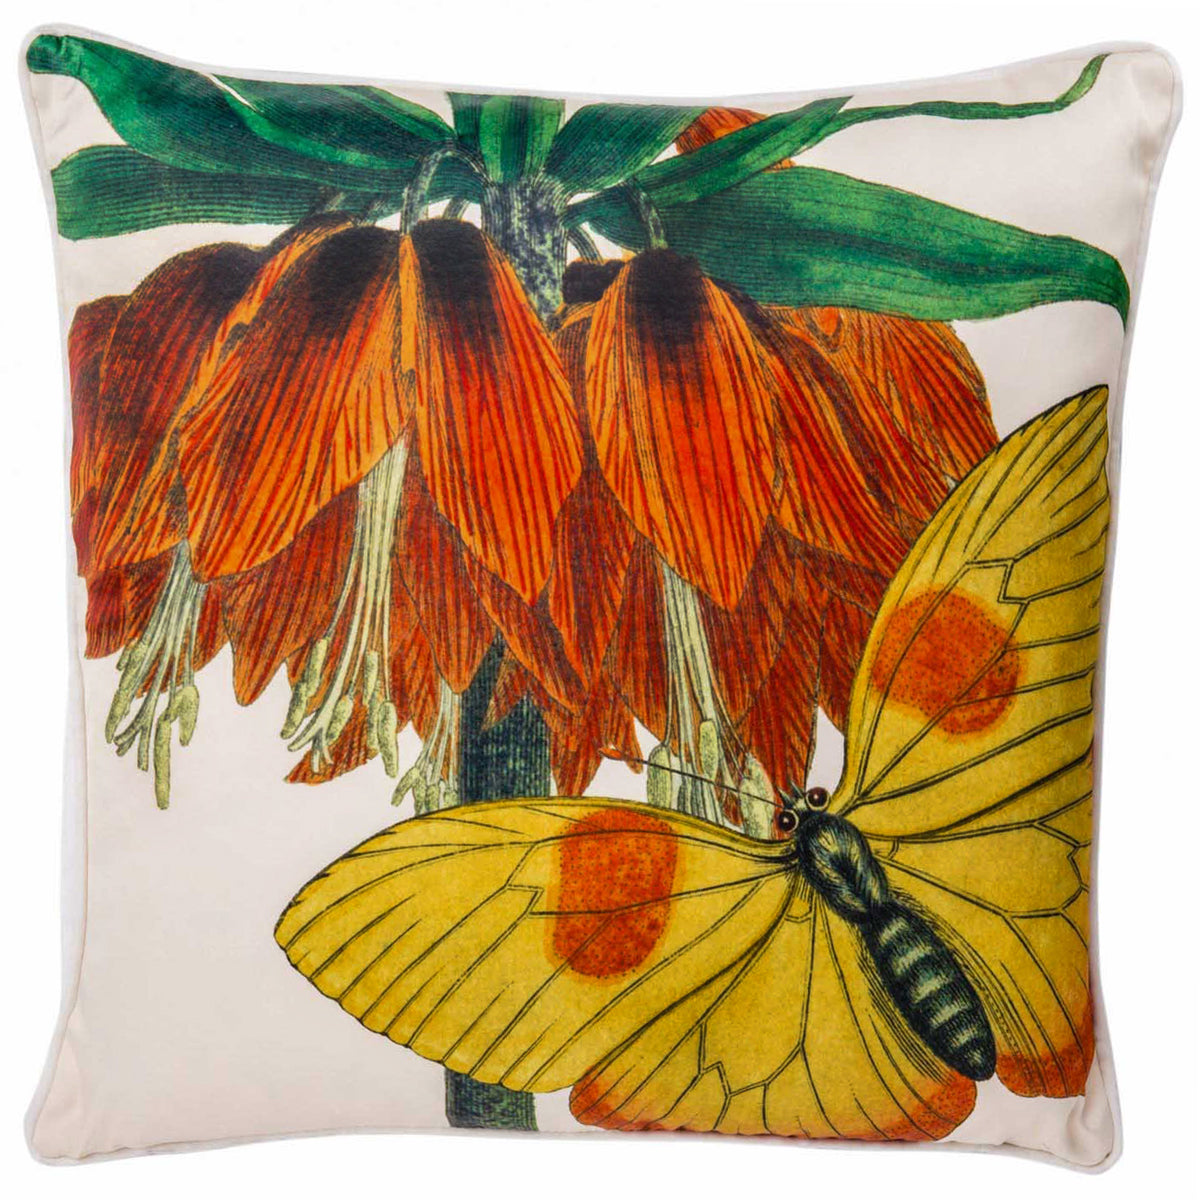 Exotico Mariposa Cushion